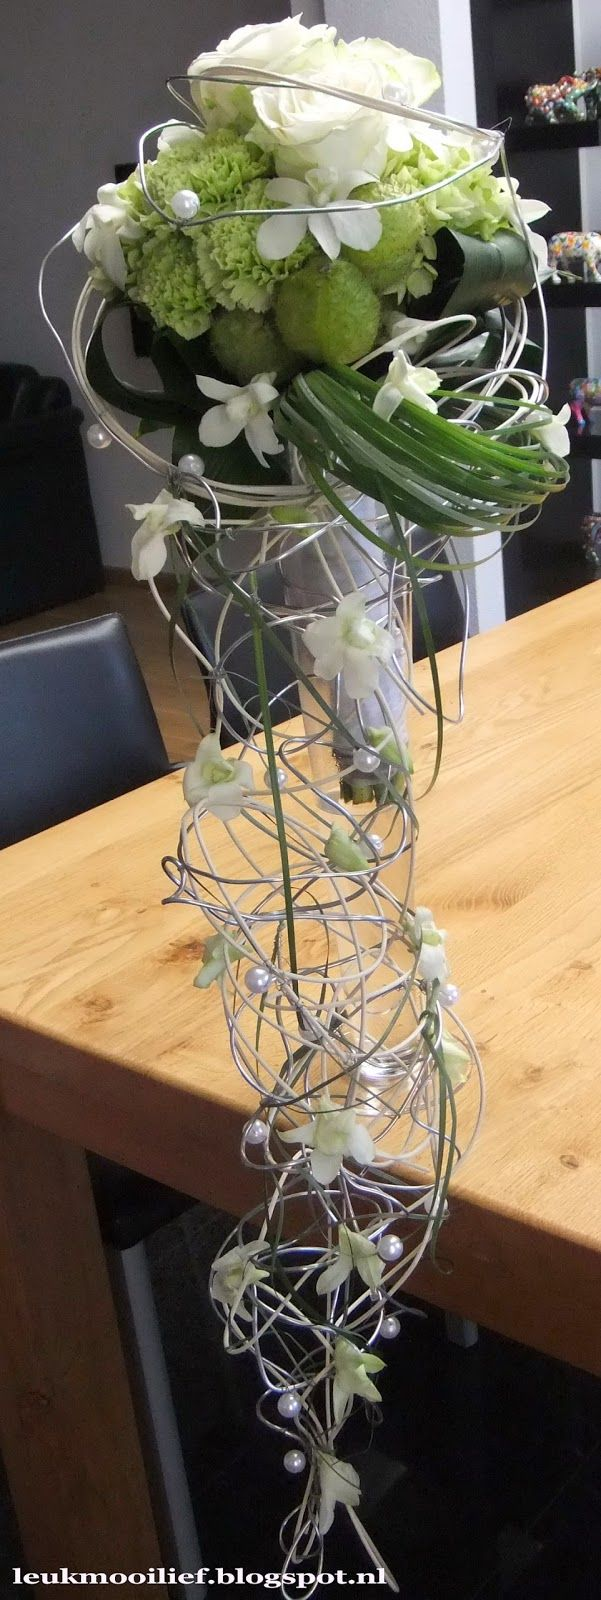 My bridal bouquet - The base is a hand tied bouquet of green Hydrangea, green carnations, large white ' Avelanche ' Roses, Asclepia ' Moby Dicks ', Dendrobium nobile and Aspidistra leaves, with a hanging point of wire frame with white Wicker, bear grass and pearls. The orchids are processed with glue technique. The stems are finished with a remnant of the wedding dress and pearls. | Leuk Mooi Lief